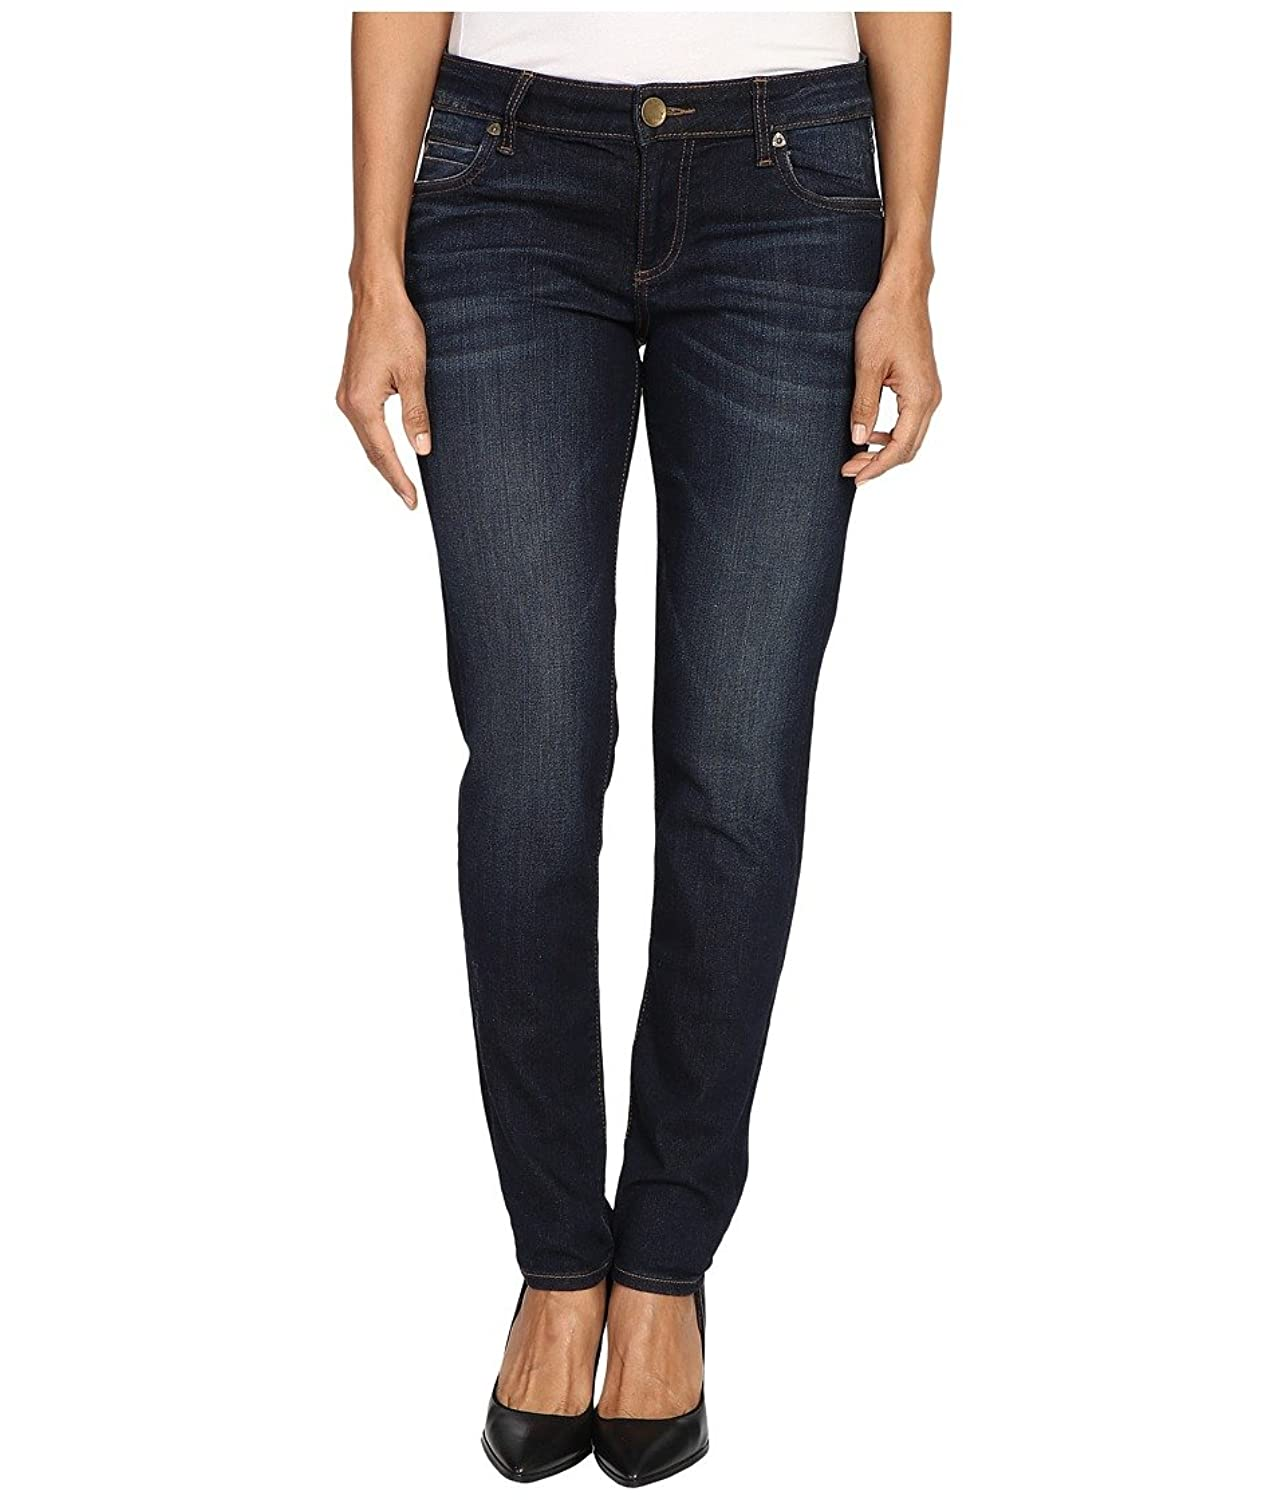 KUT from the Kloth Women's Petite Diana Skinny Jeans in